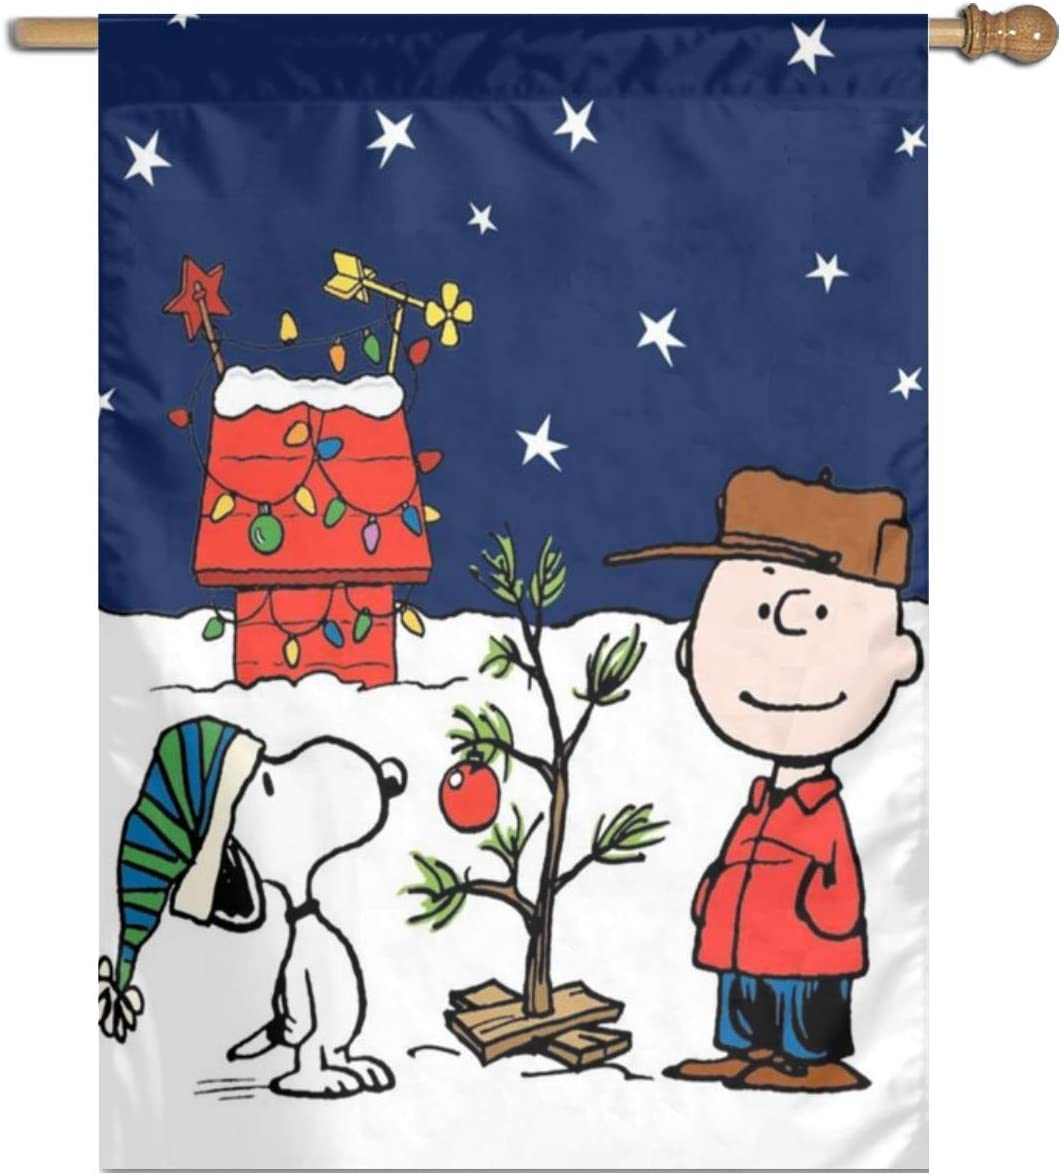 LeosWare Snoopy and Peanuts Charlie Brown Christmas Garden Colorful Decoration Lawn Sign